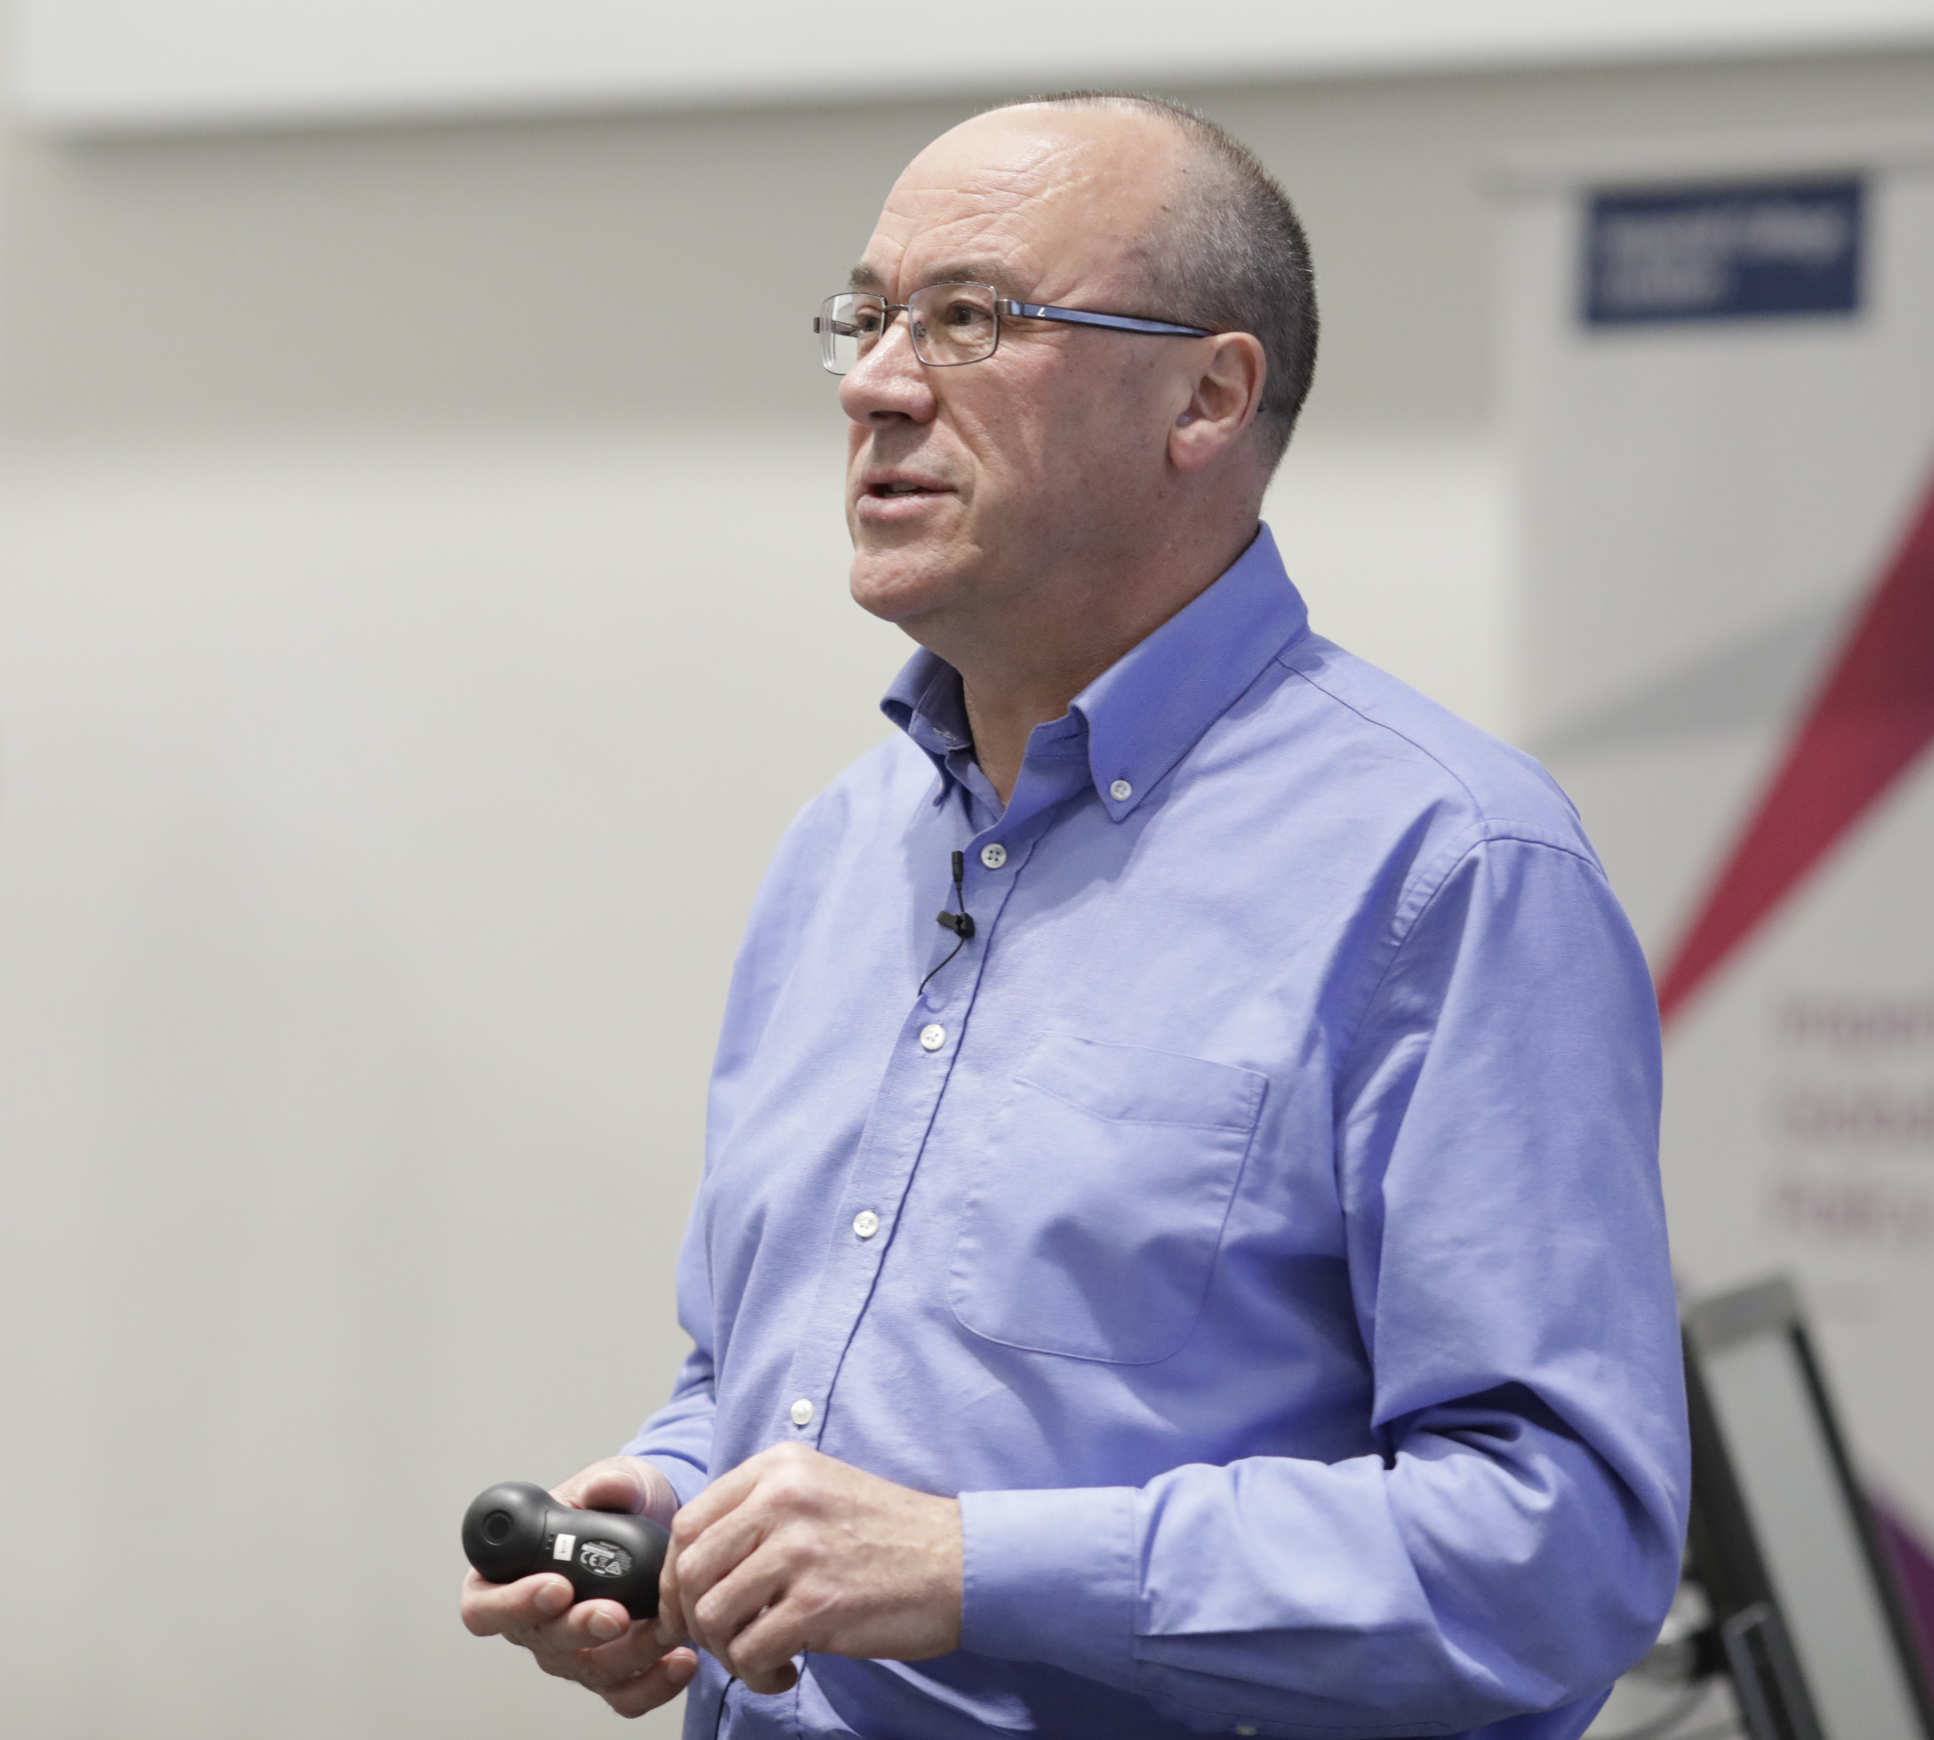 Professor Chris Bishop, Director of the Microsoft Research Lab,